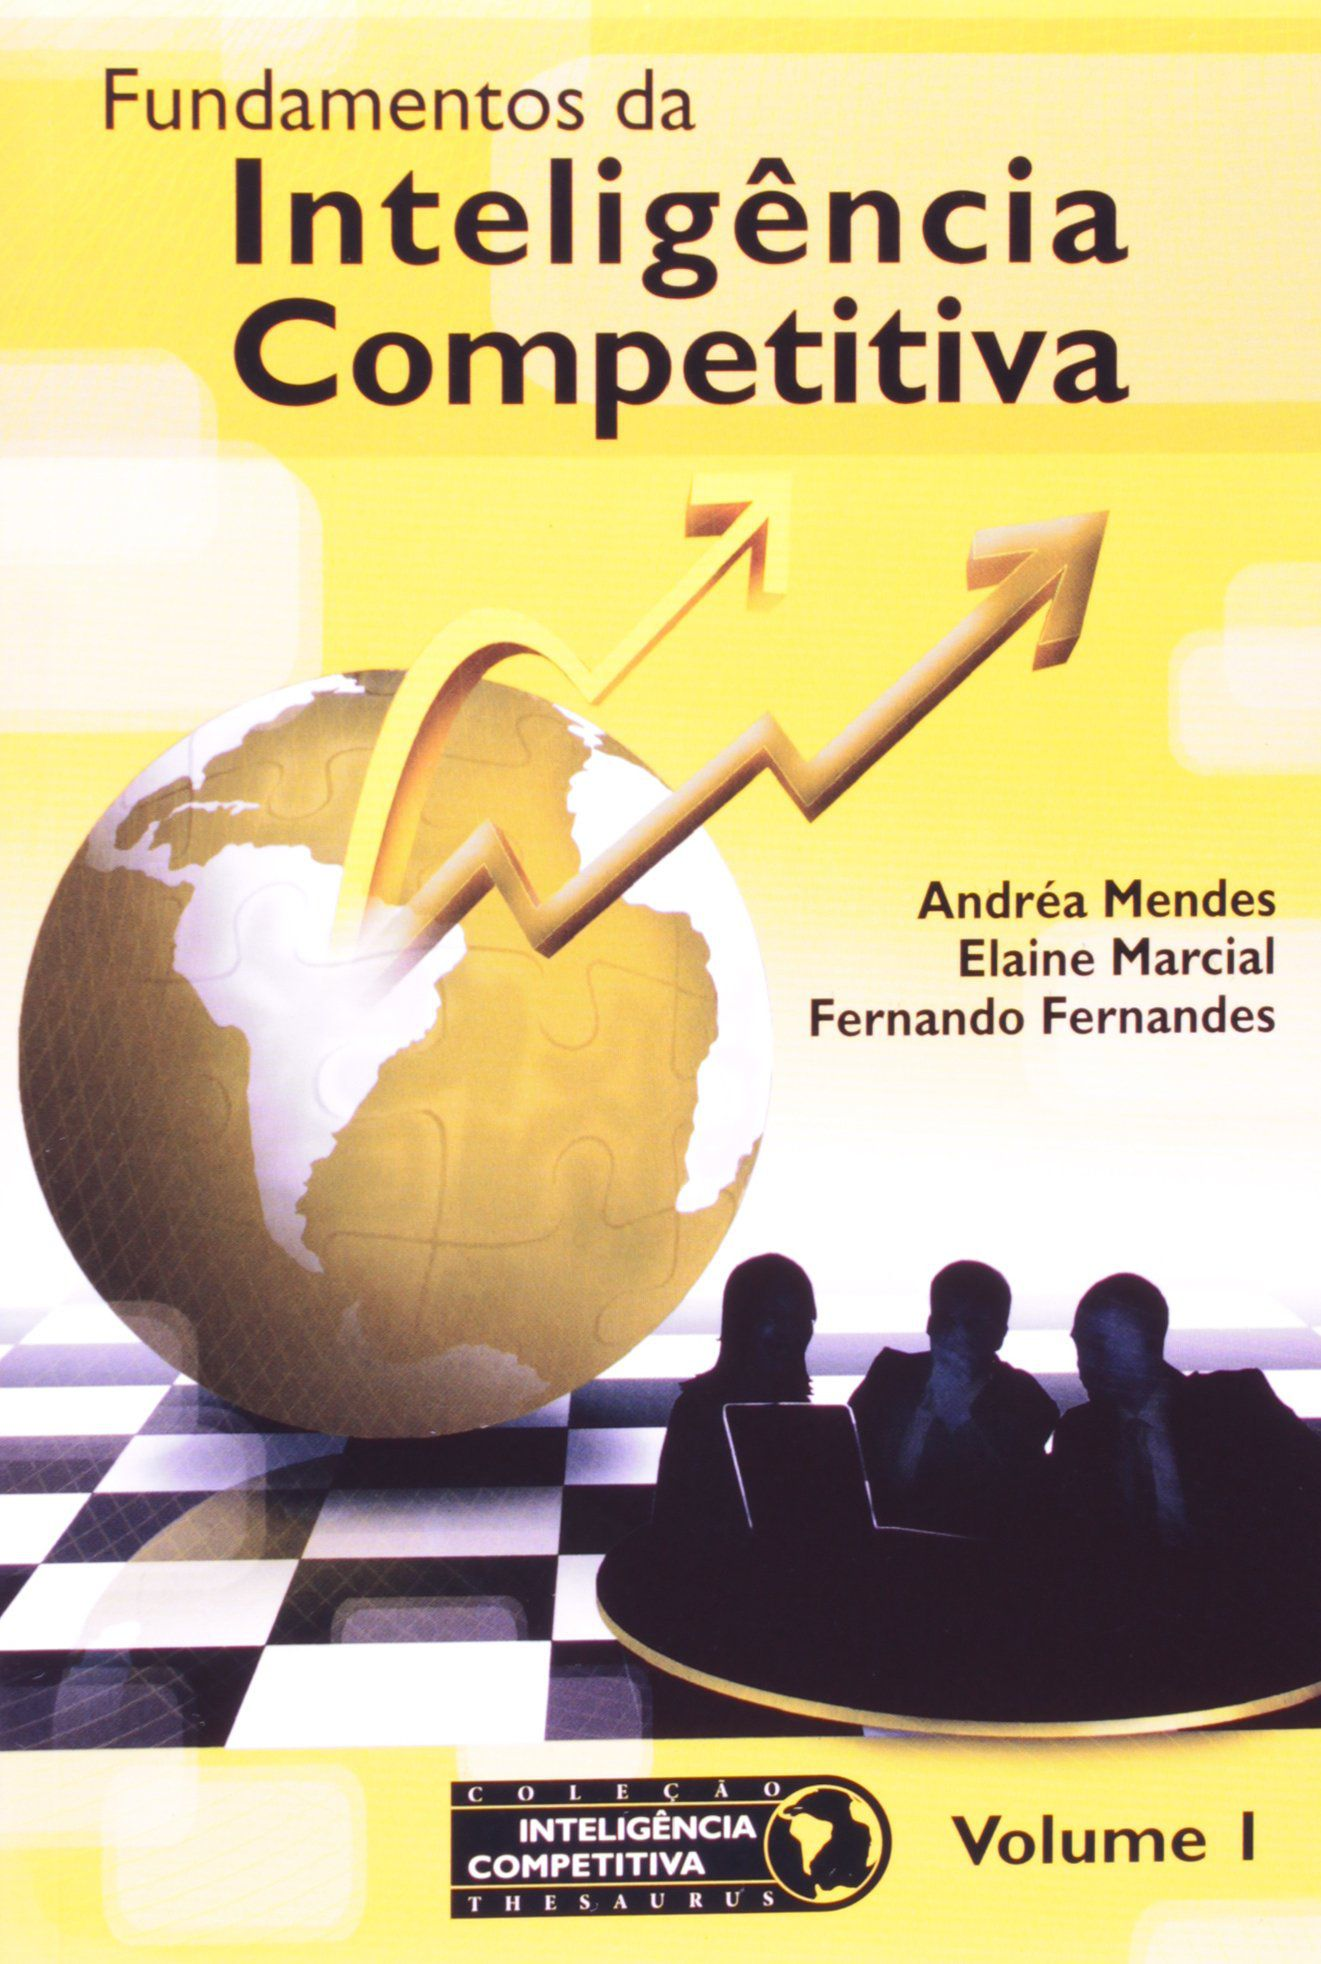 Fundamentos da Inteligência Competitiva